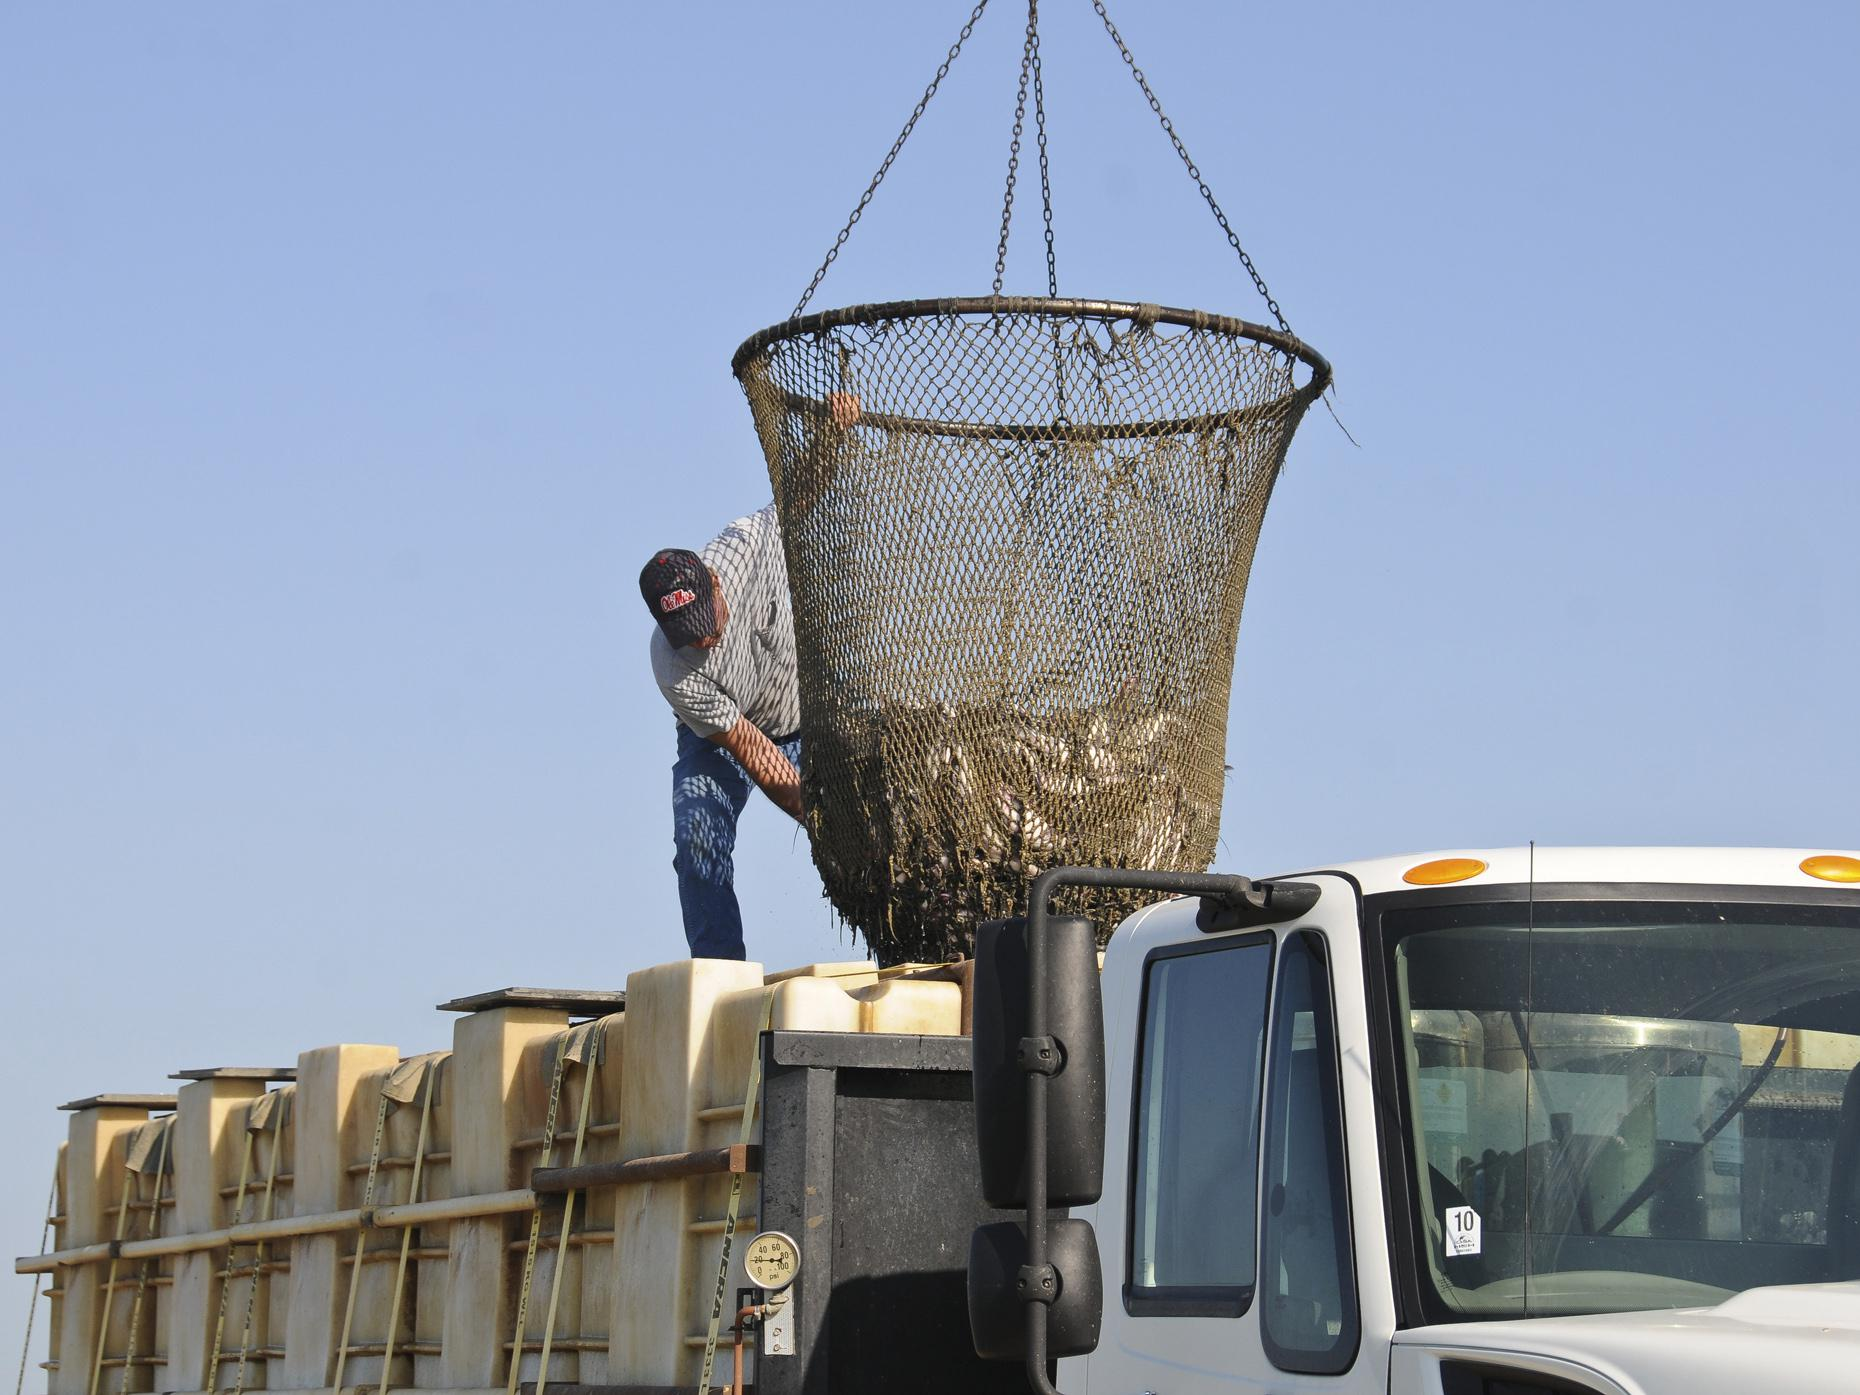 Caught in a trap of high input costs and low pond bank prices, Mississippi's catfish farmers struggle to break even as the nation's drought tightens feed supplies. (Photo by MSU Ag Communications/Scott Corey)